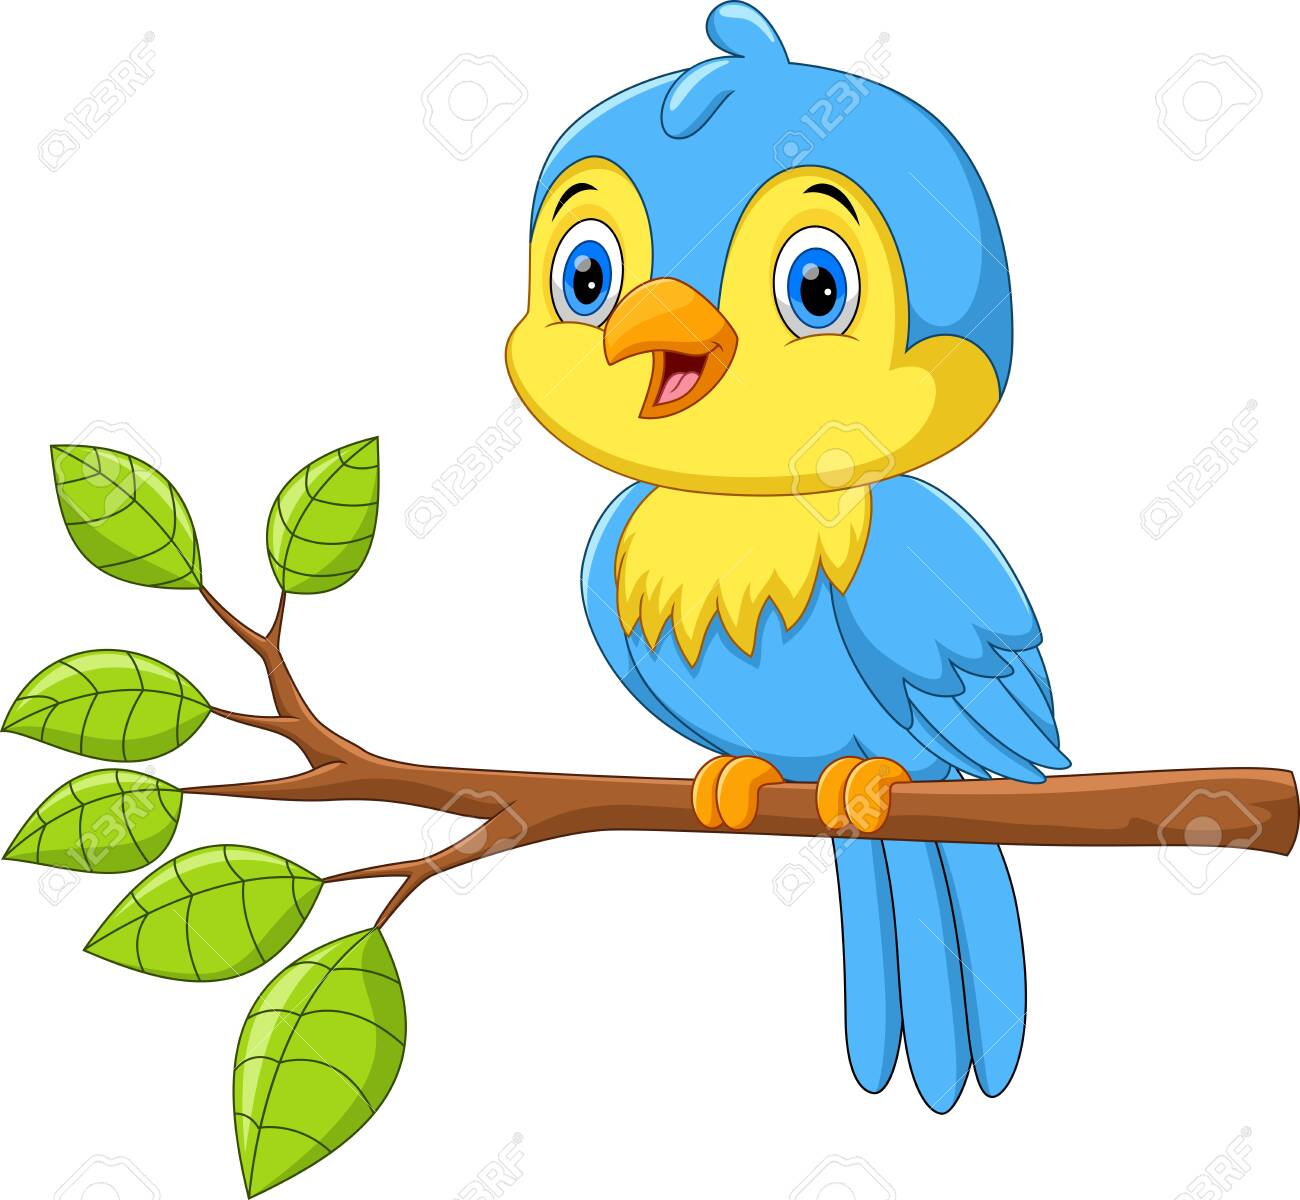 Vector illustration of Cute little bird on a tree branch isolated on white background - 123744258